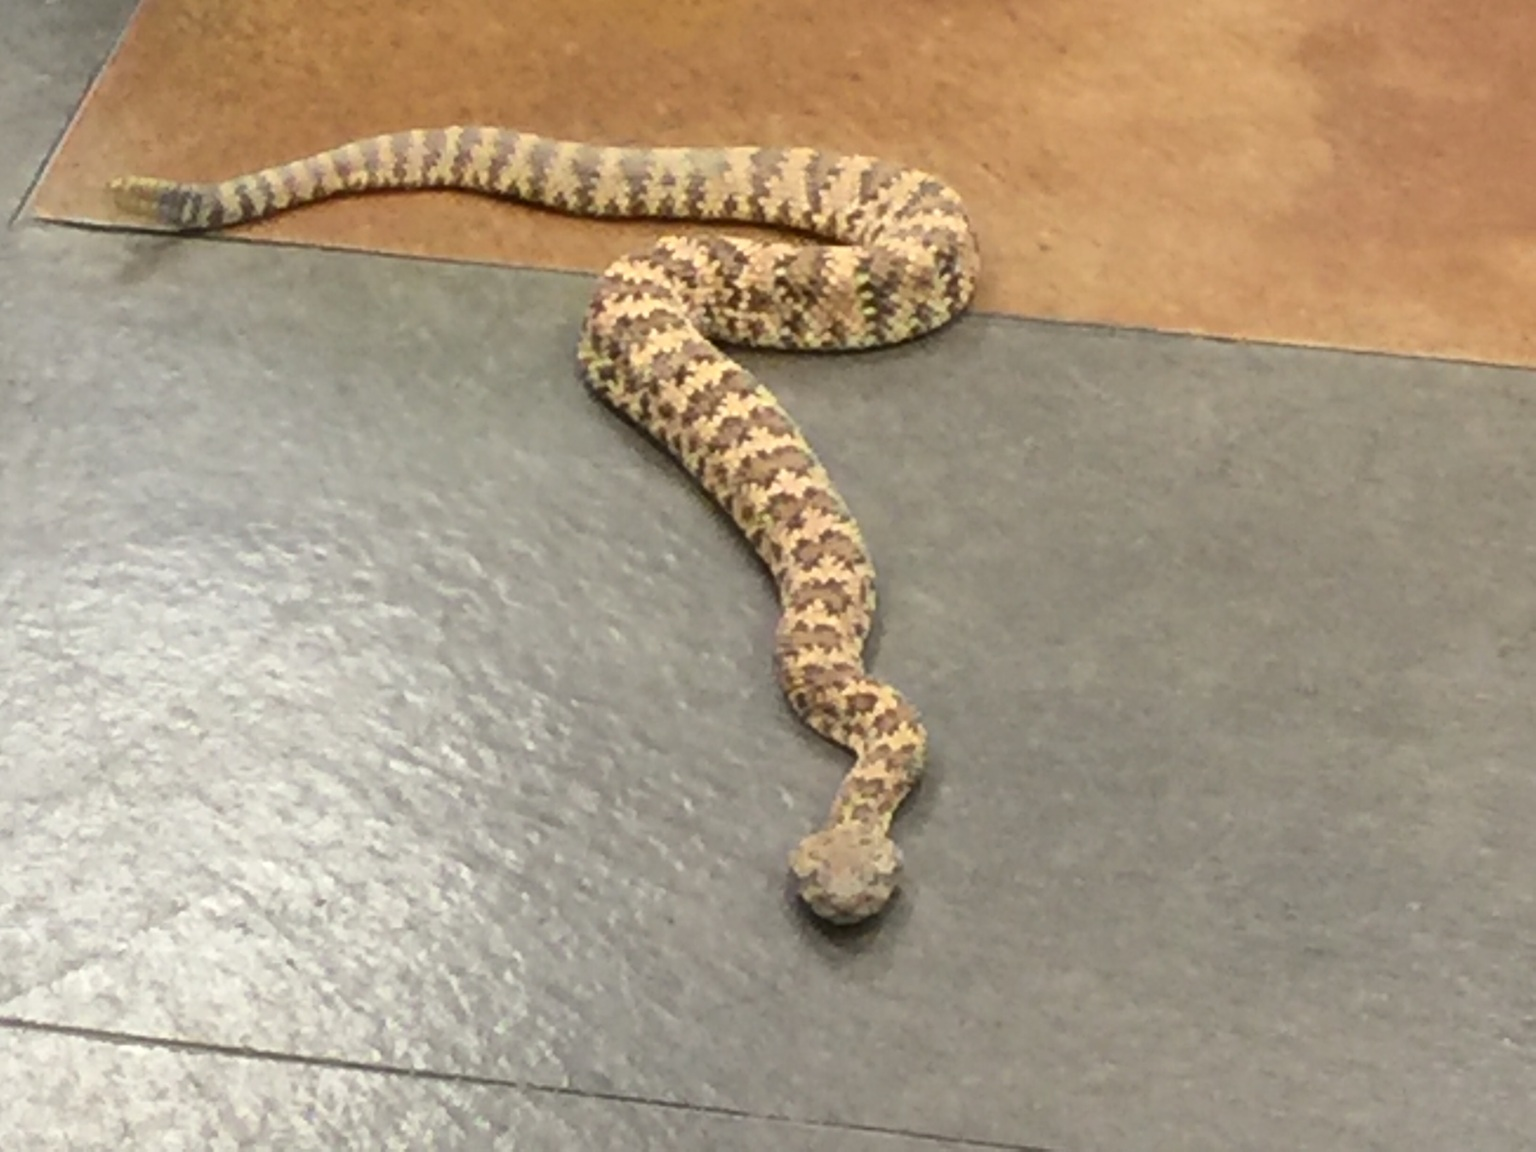 Tips: What Should You Do If You Encounter a Rattlesnake?